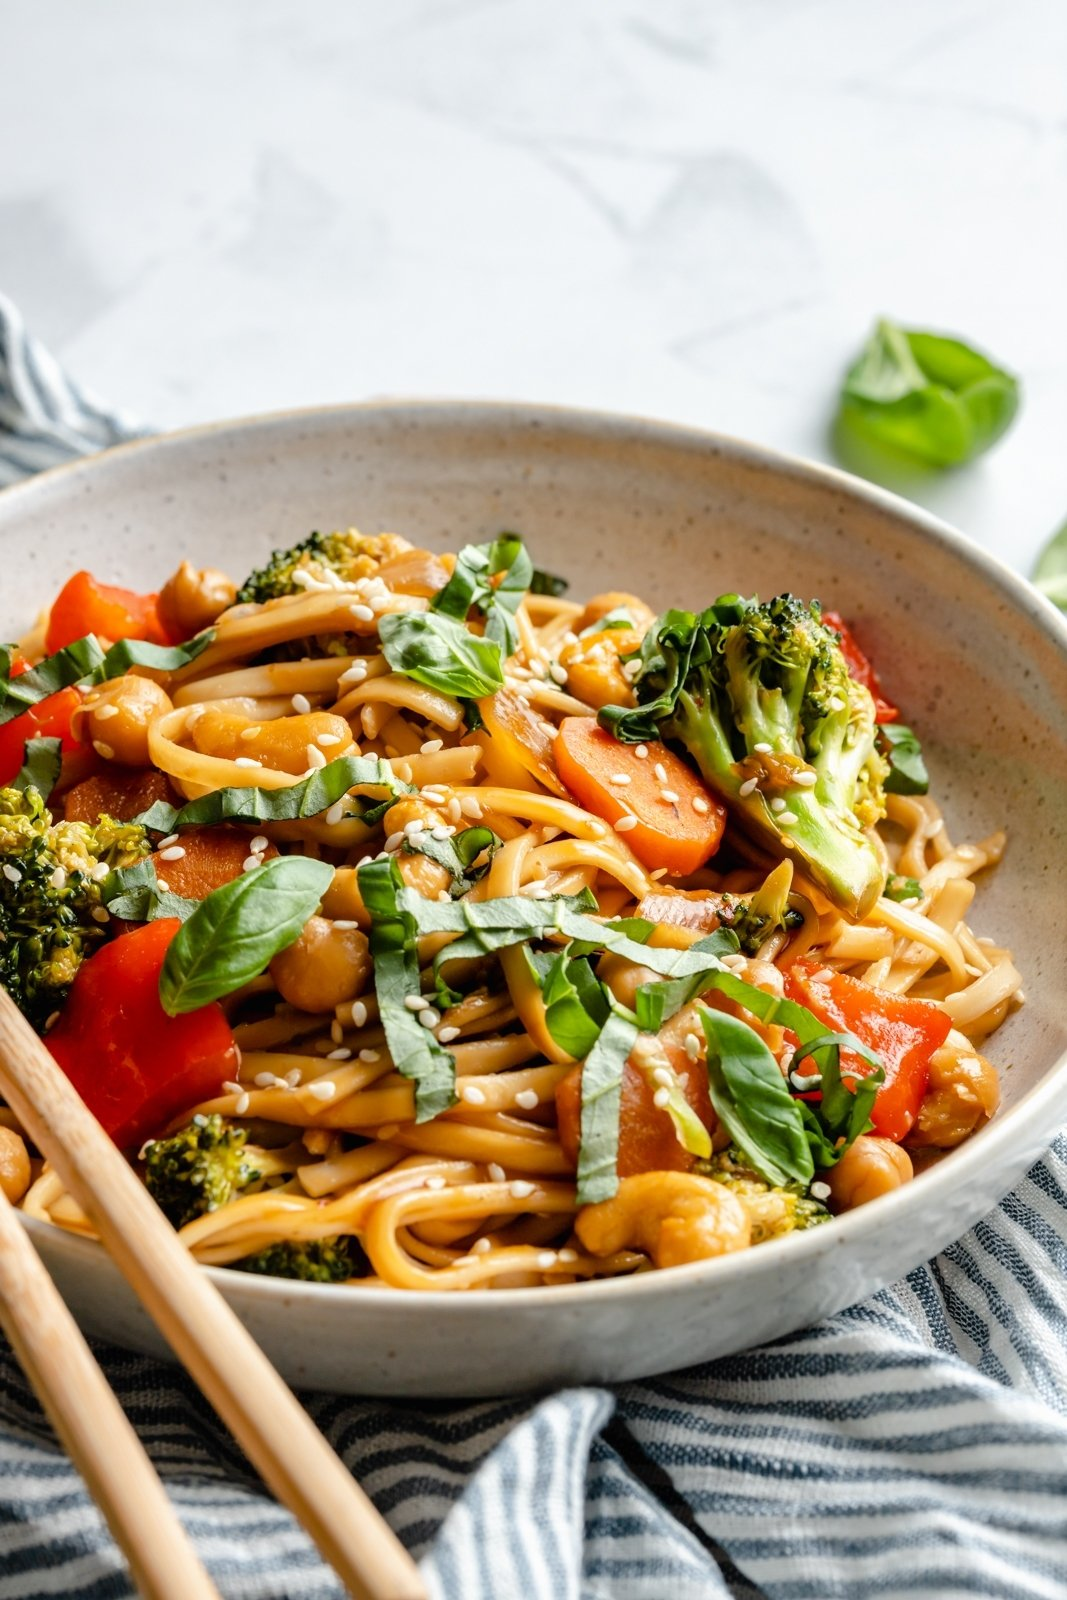 vegan stir fry noodles in a bowl with veggies